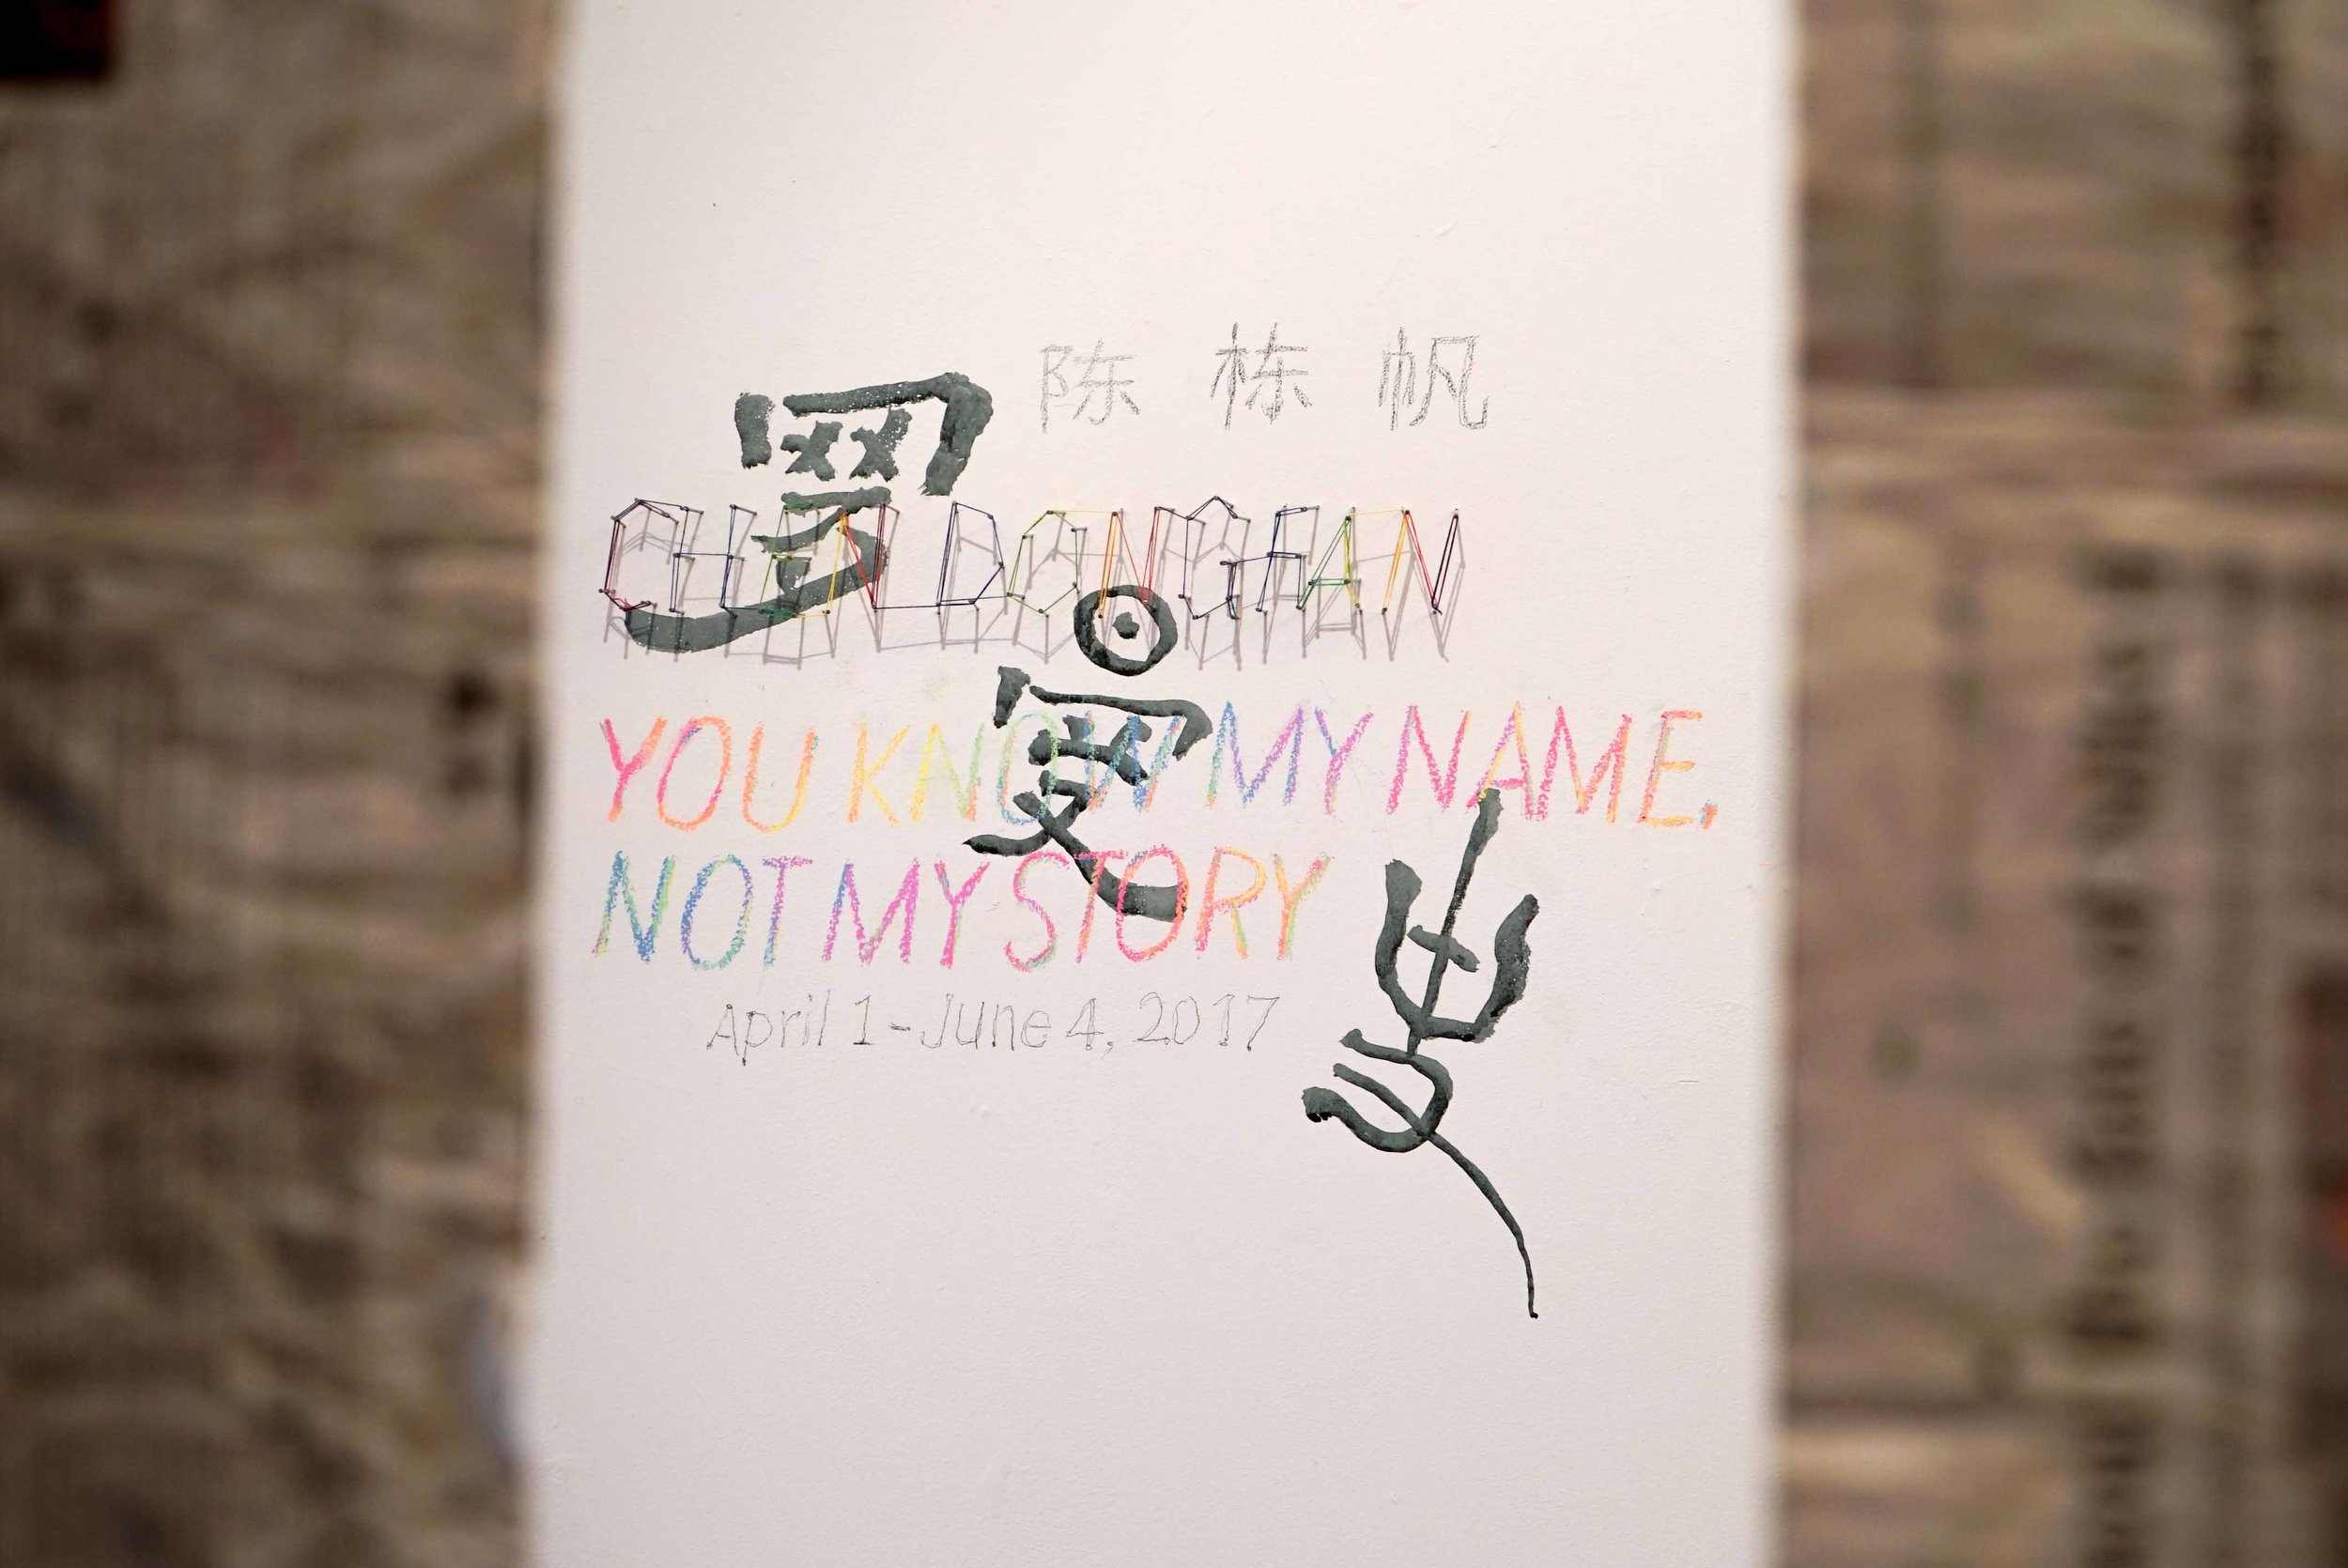 Chen Dongfan: You Know My Name, Not My Story Installation View